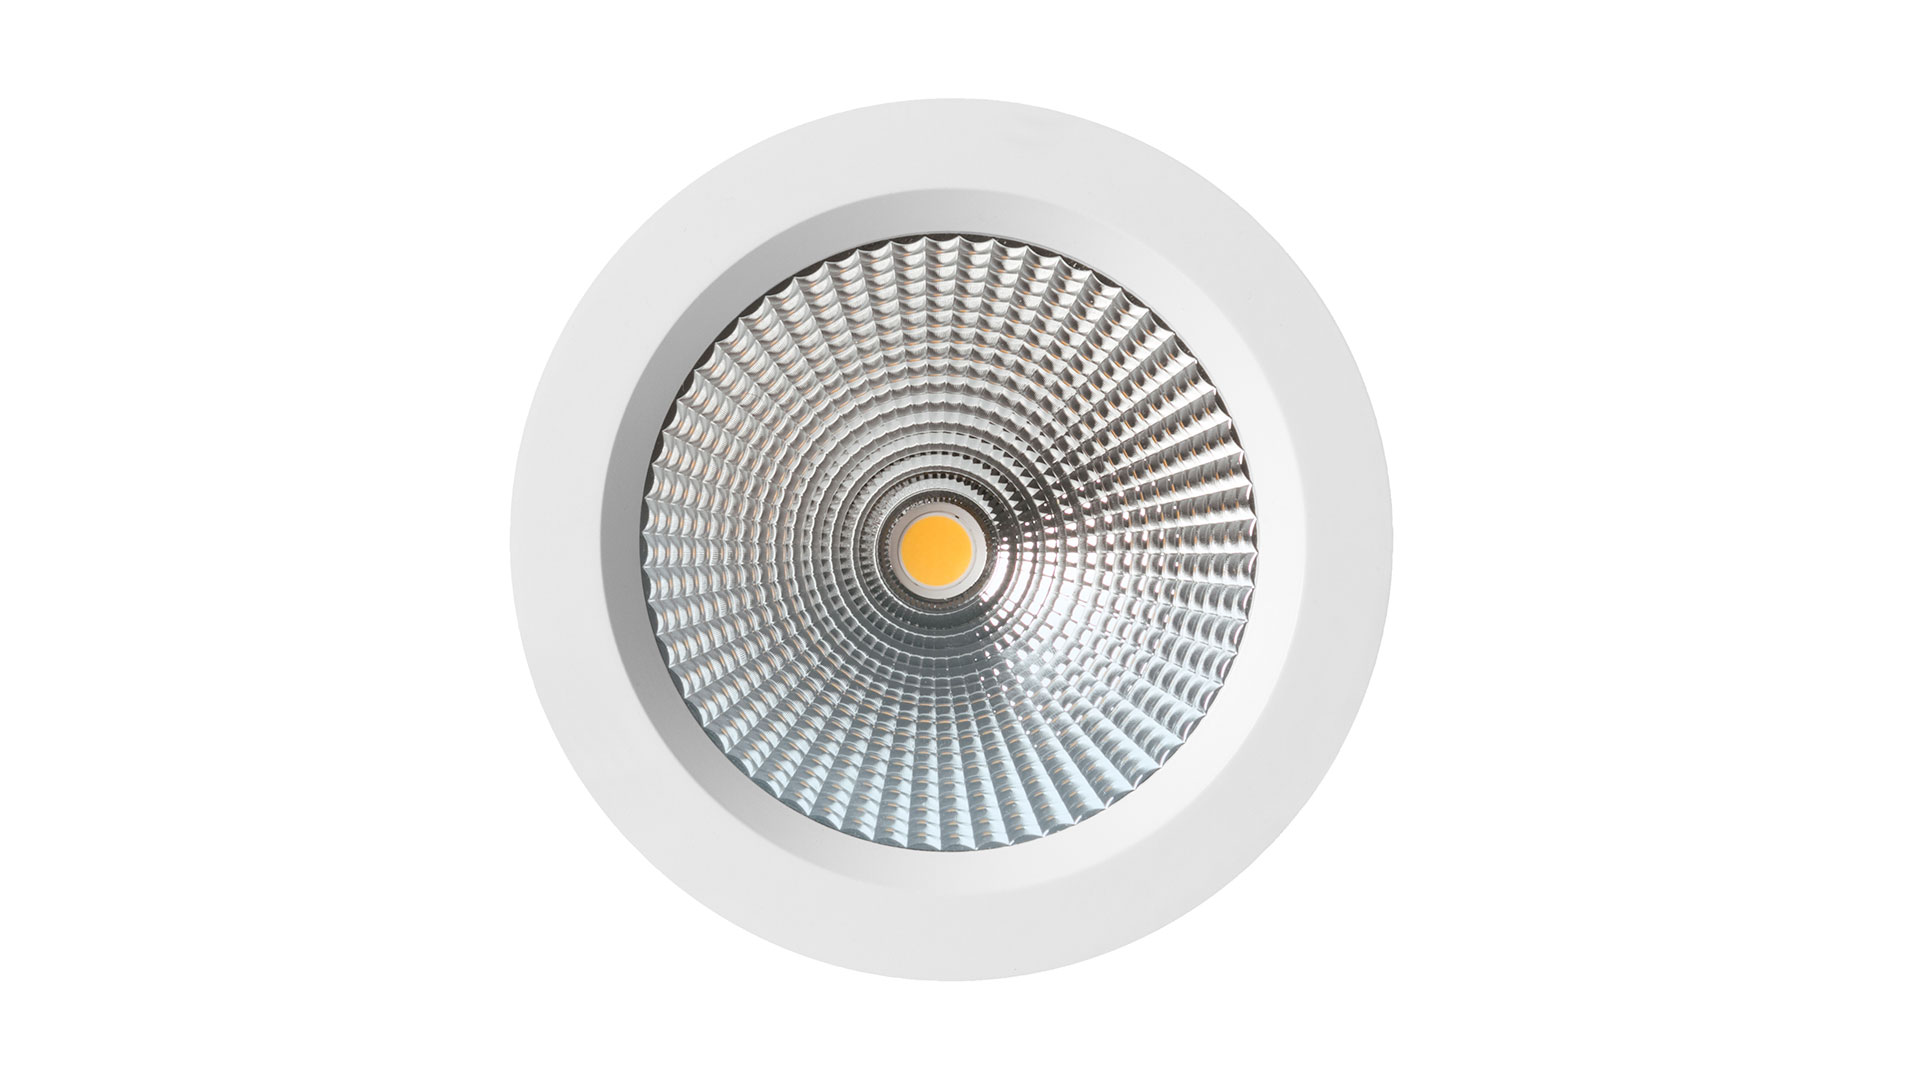 perlita-m-2-els-european-lighting-solutions.jpg